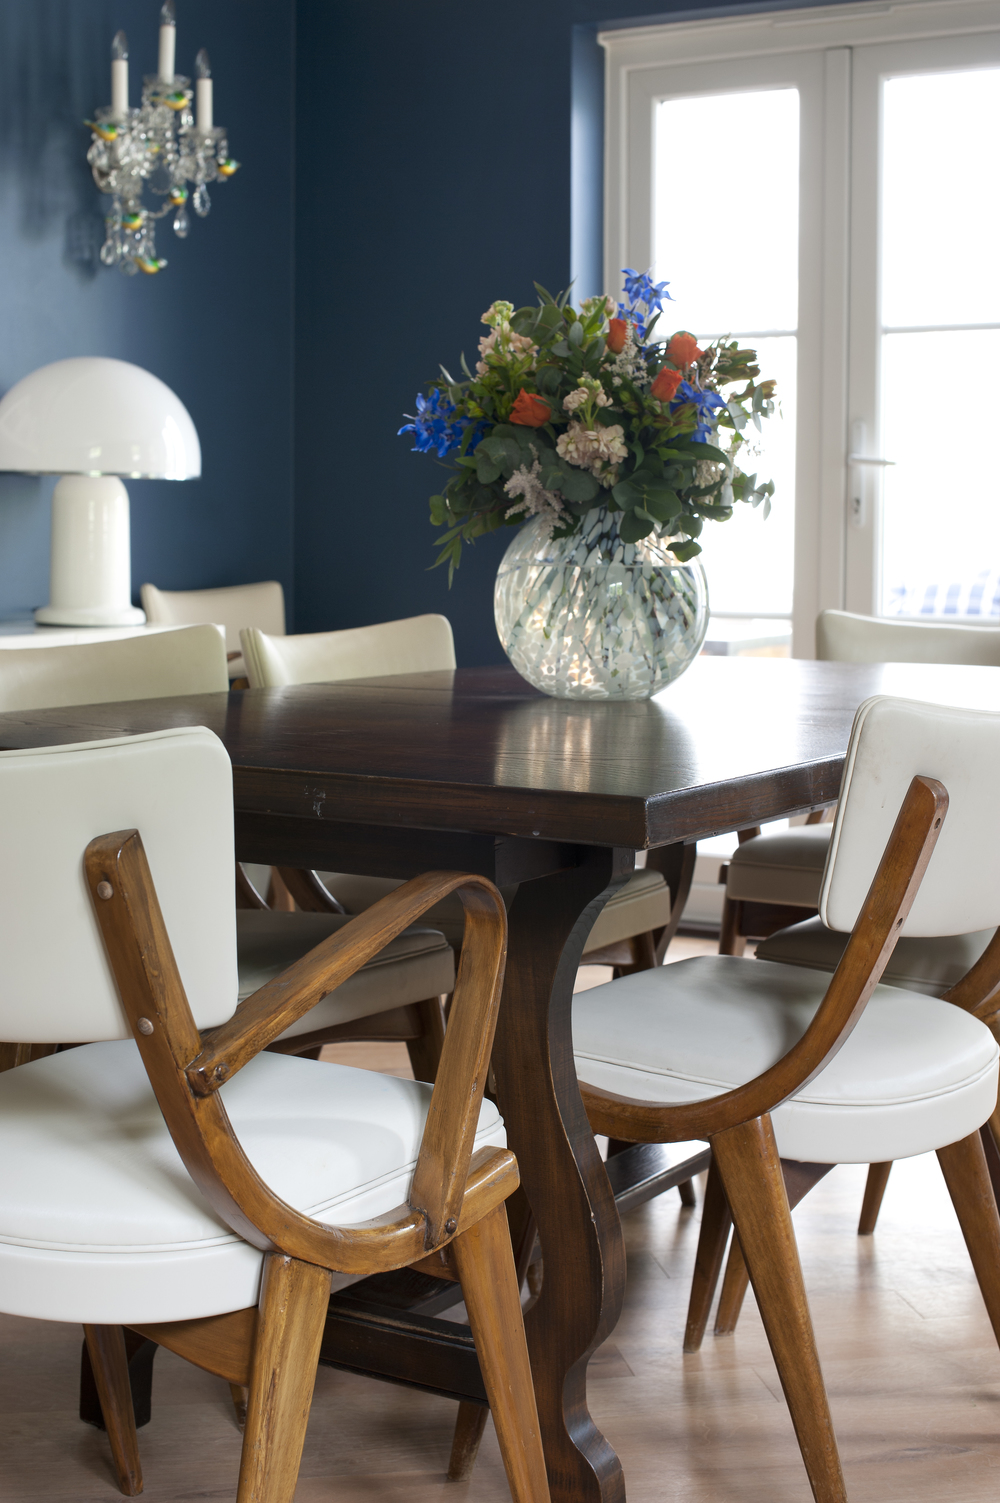 Tunbridge Wells Home Renovation by Smartstyle Interiors – Dining Room Chairs.jpg